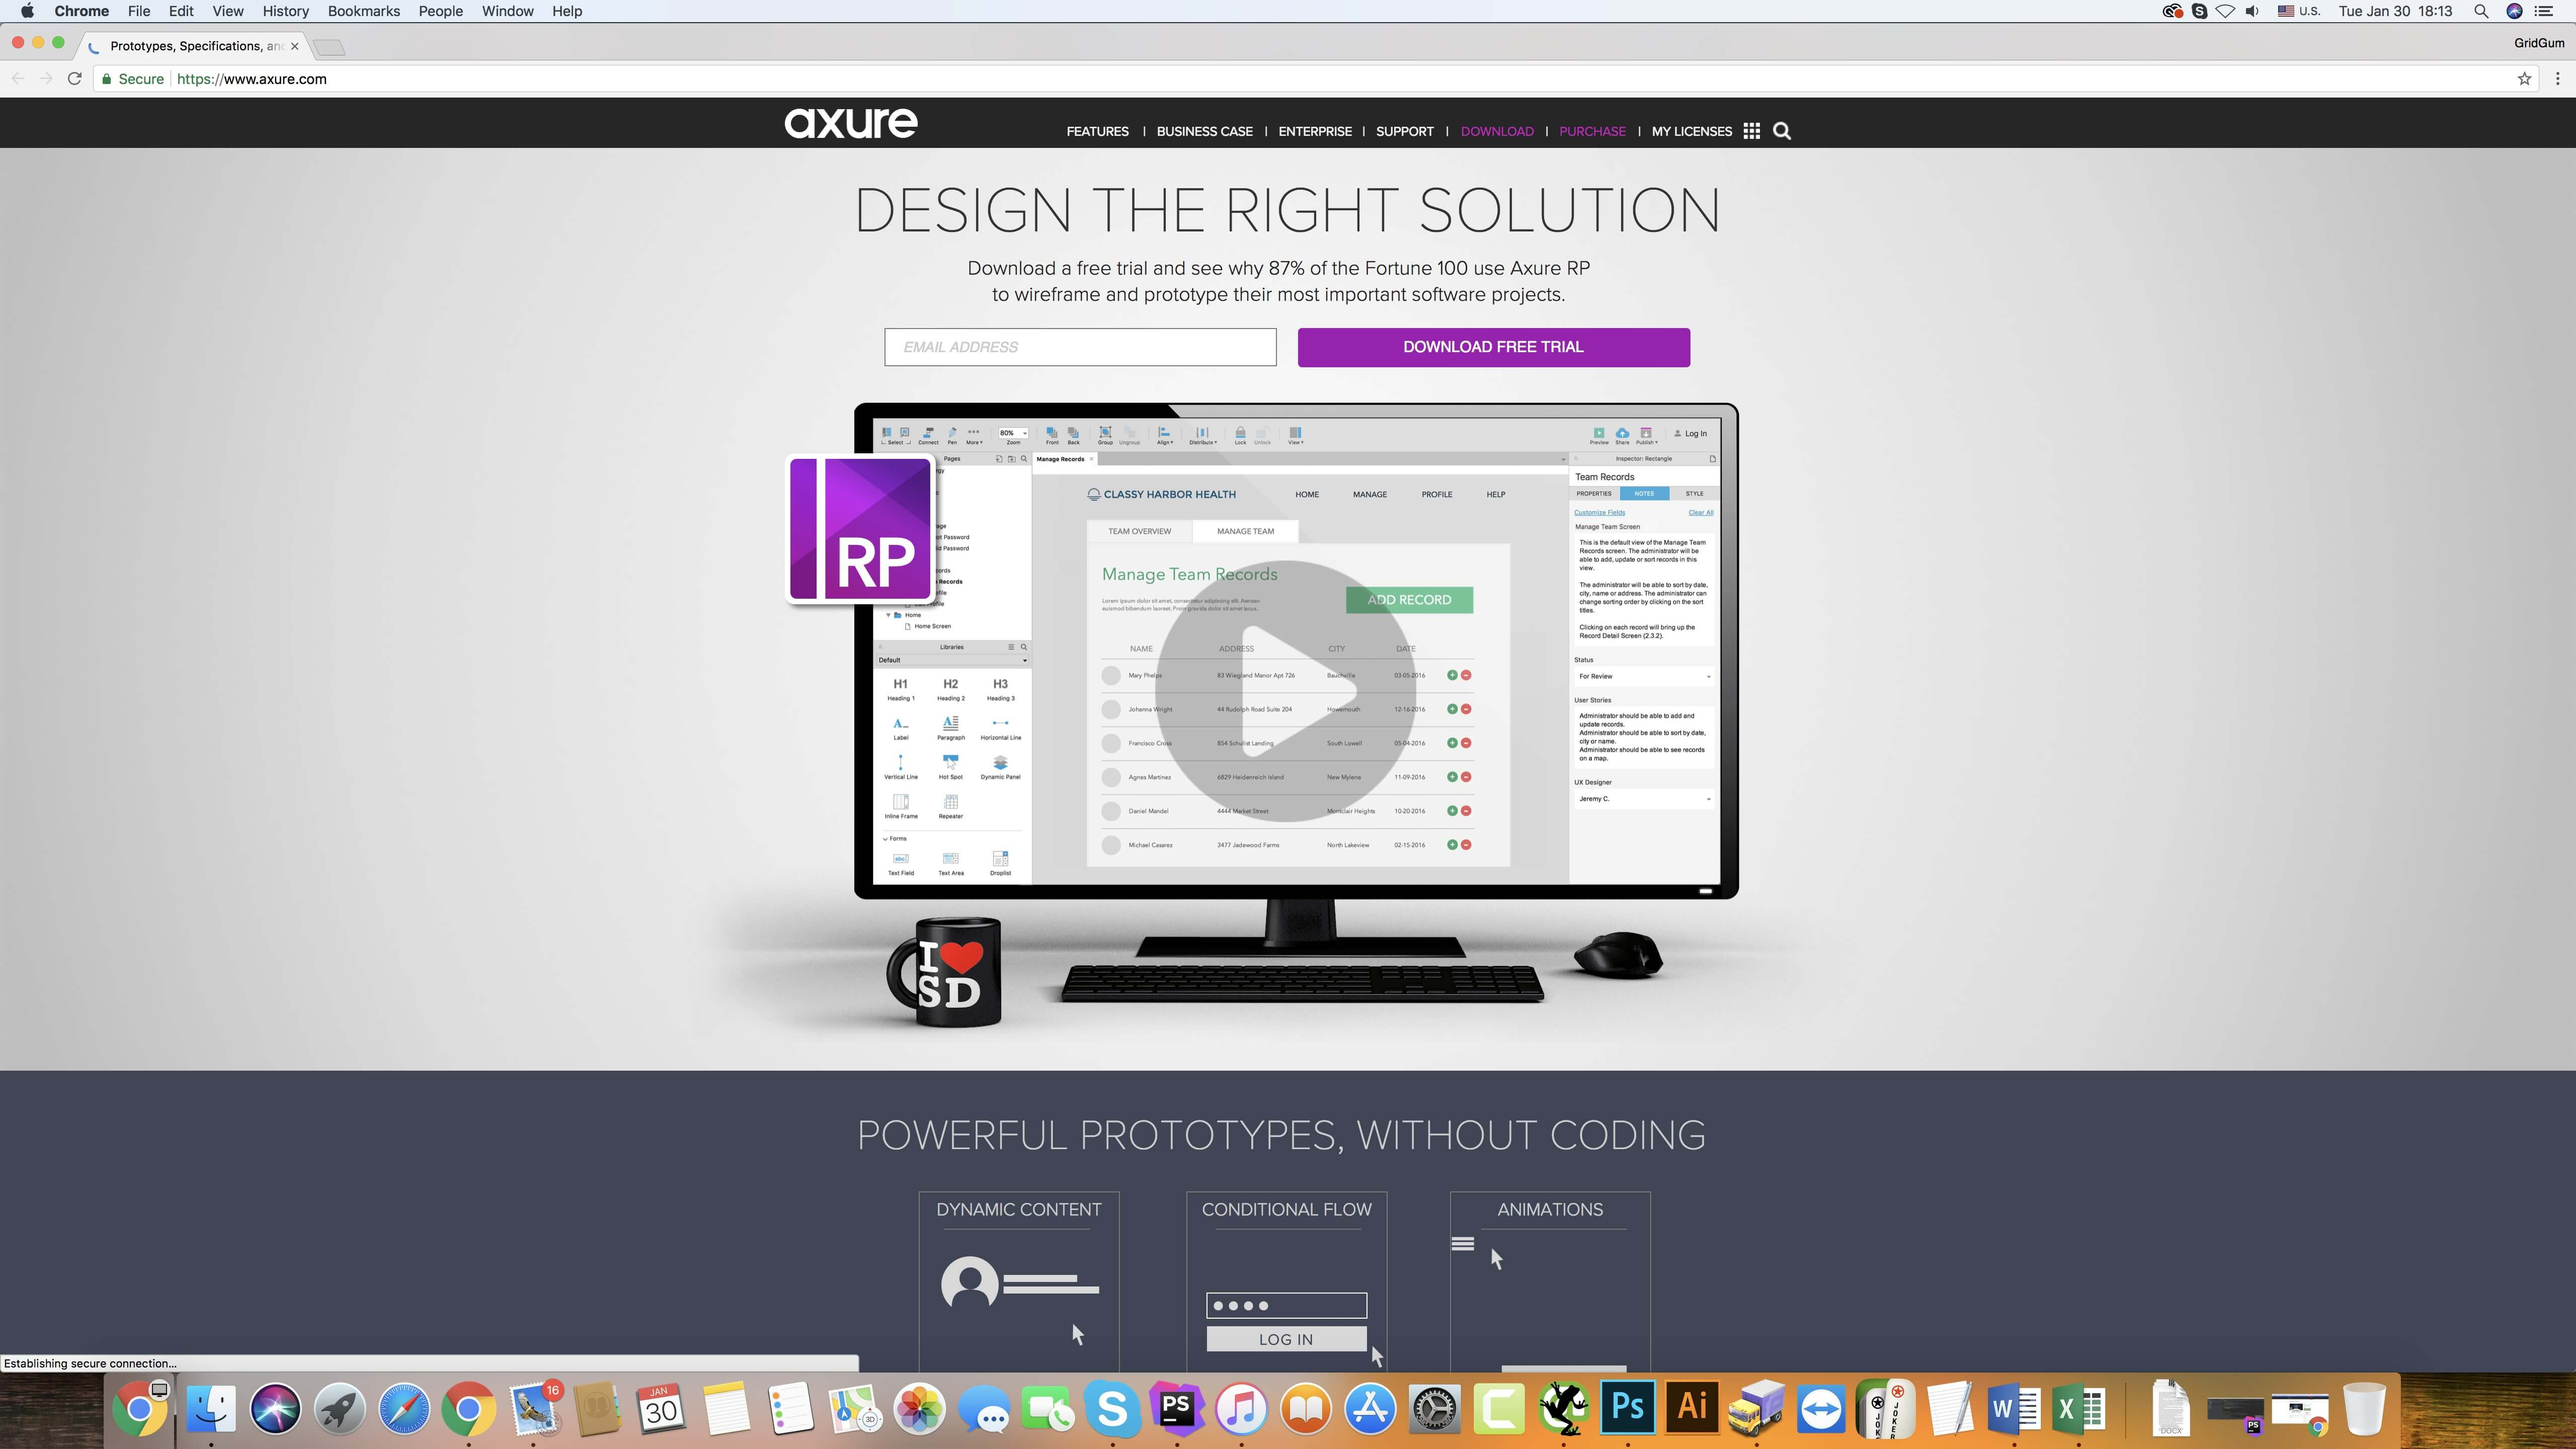 10 Best Web Designing Tools for Prototyping